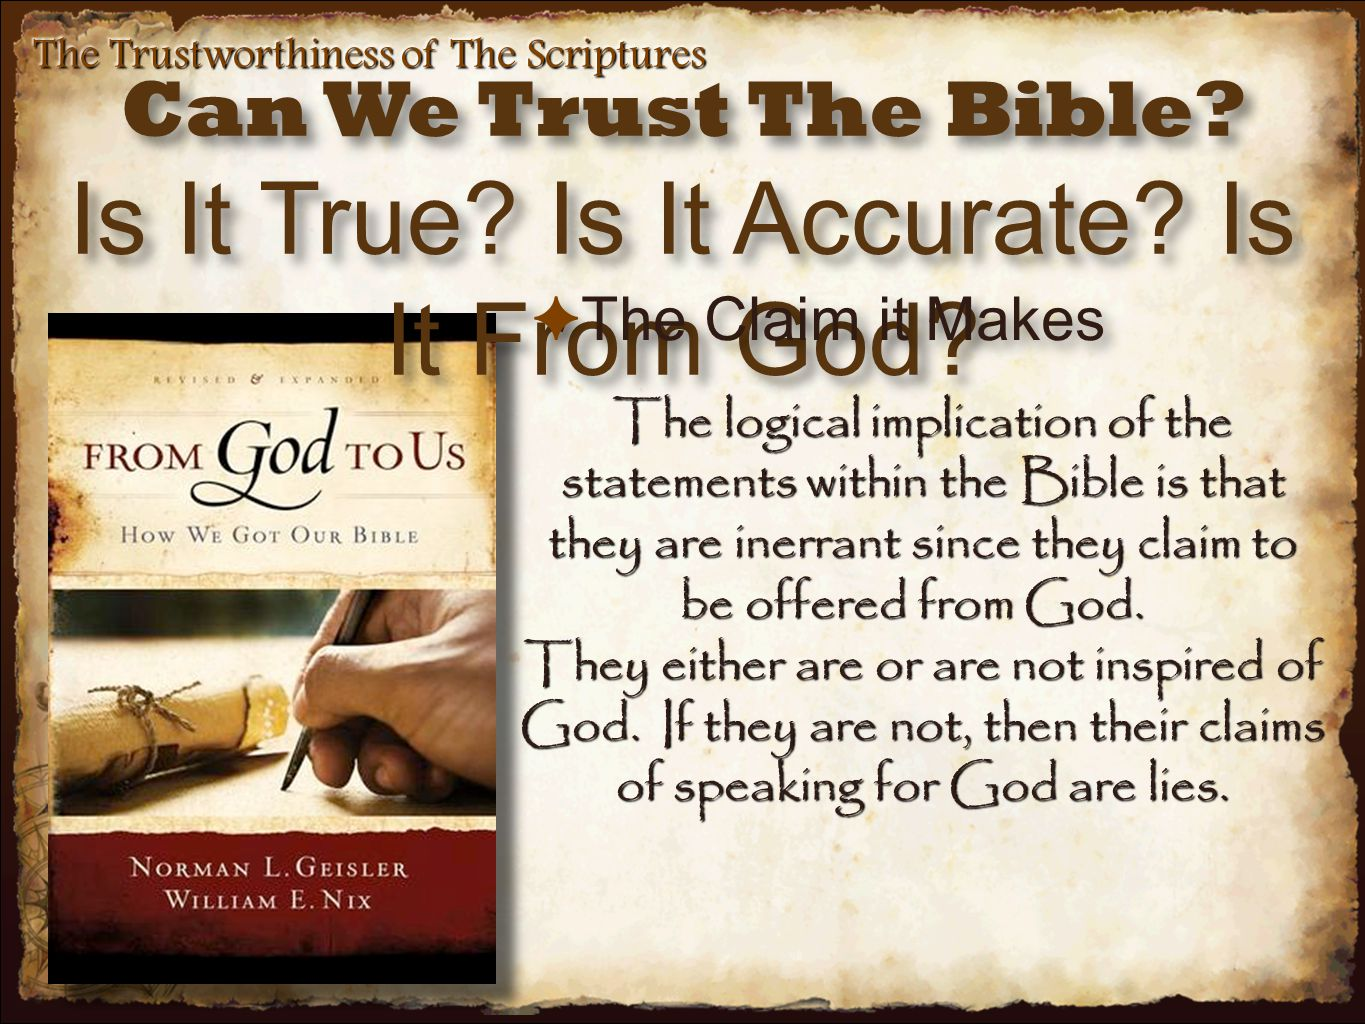 The Trustworthiness of The Scriptures The logical implication of the statements within the Bible is that they are inerrant since they claim to be offered from God.